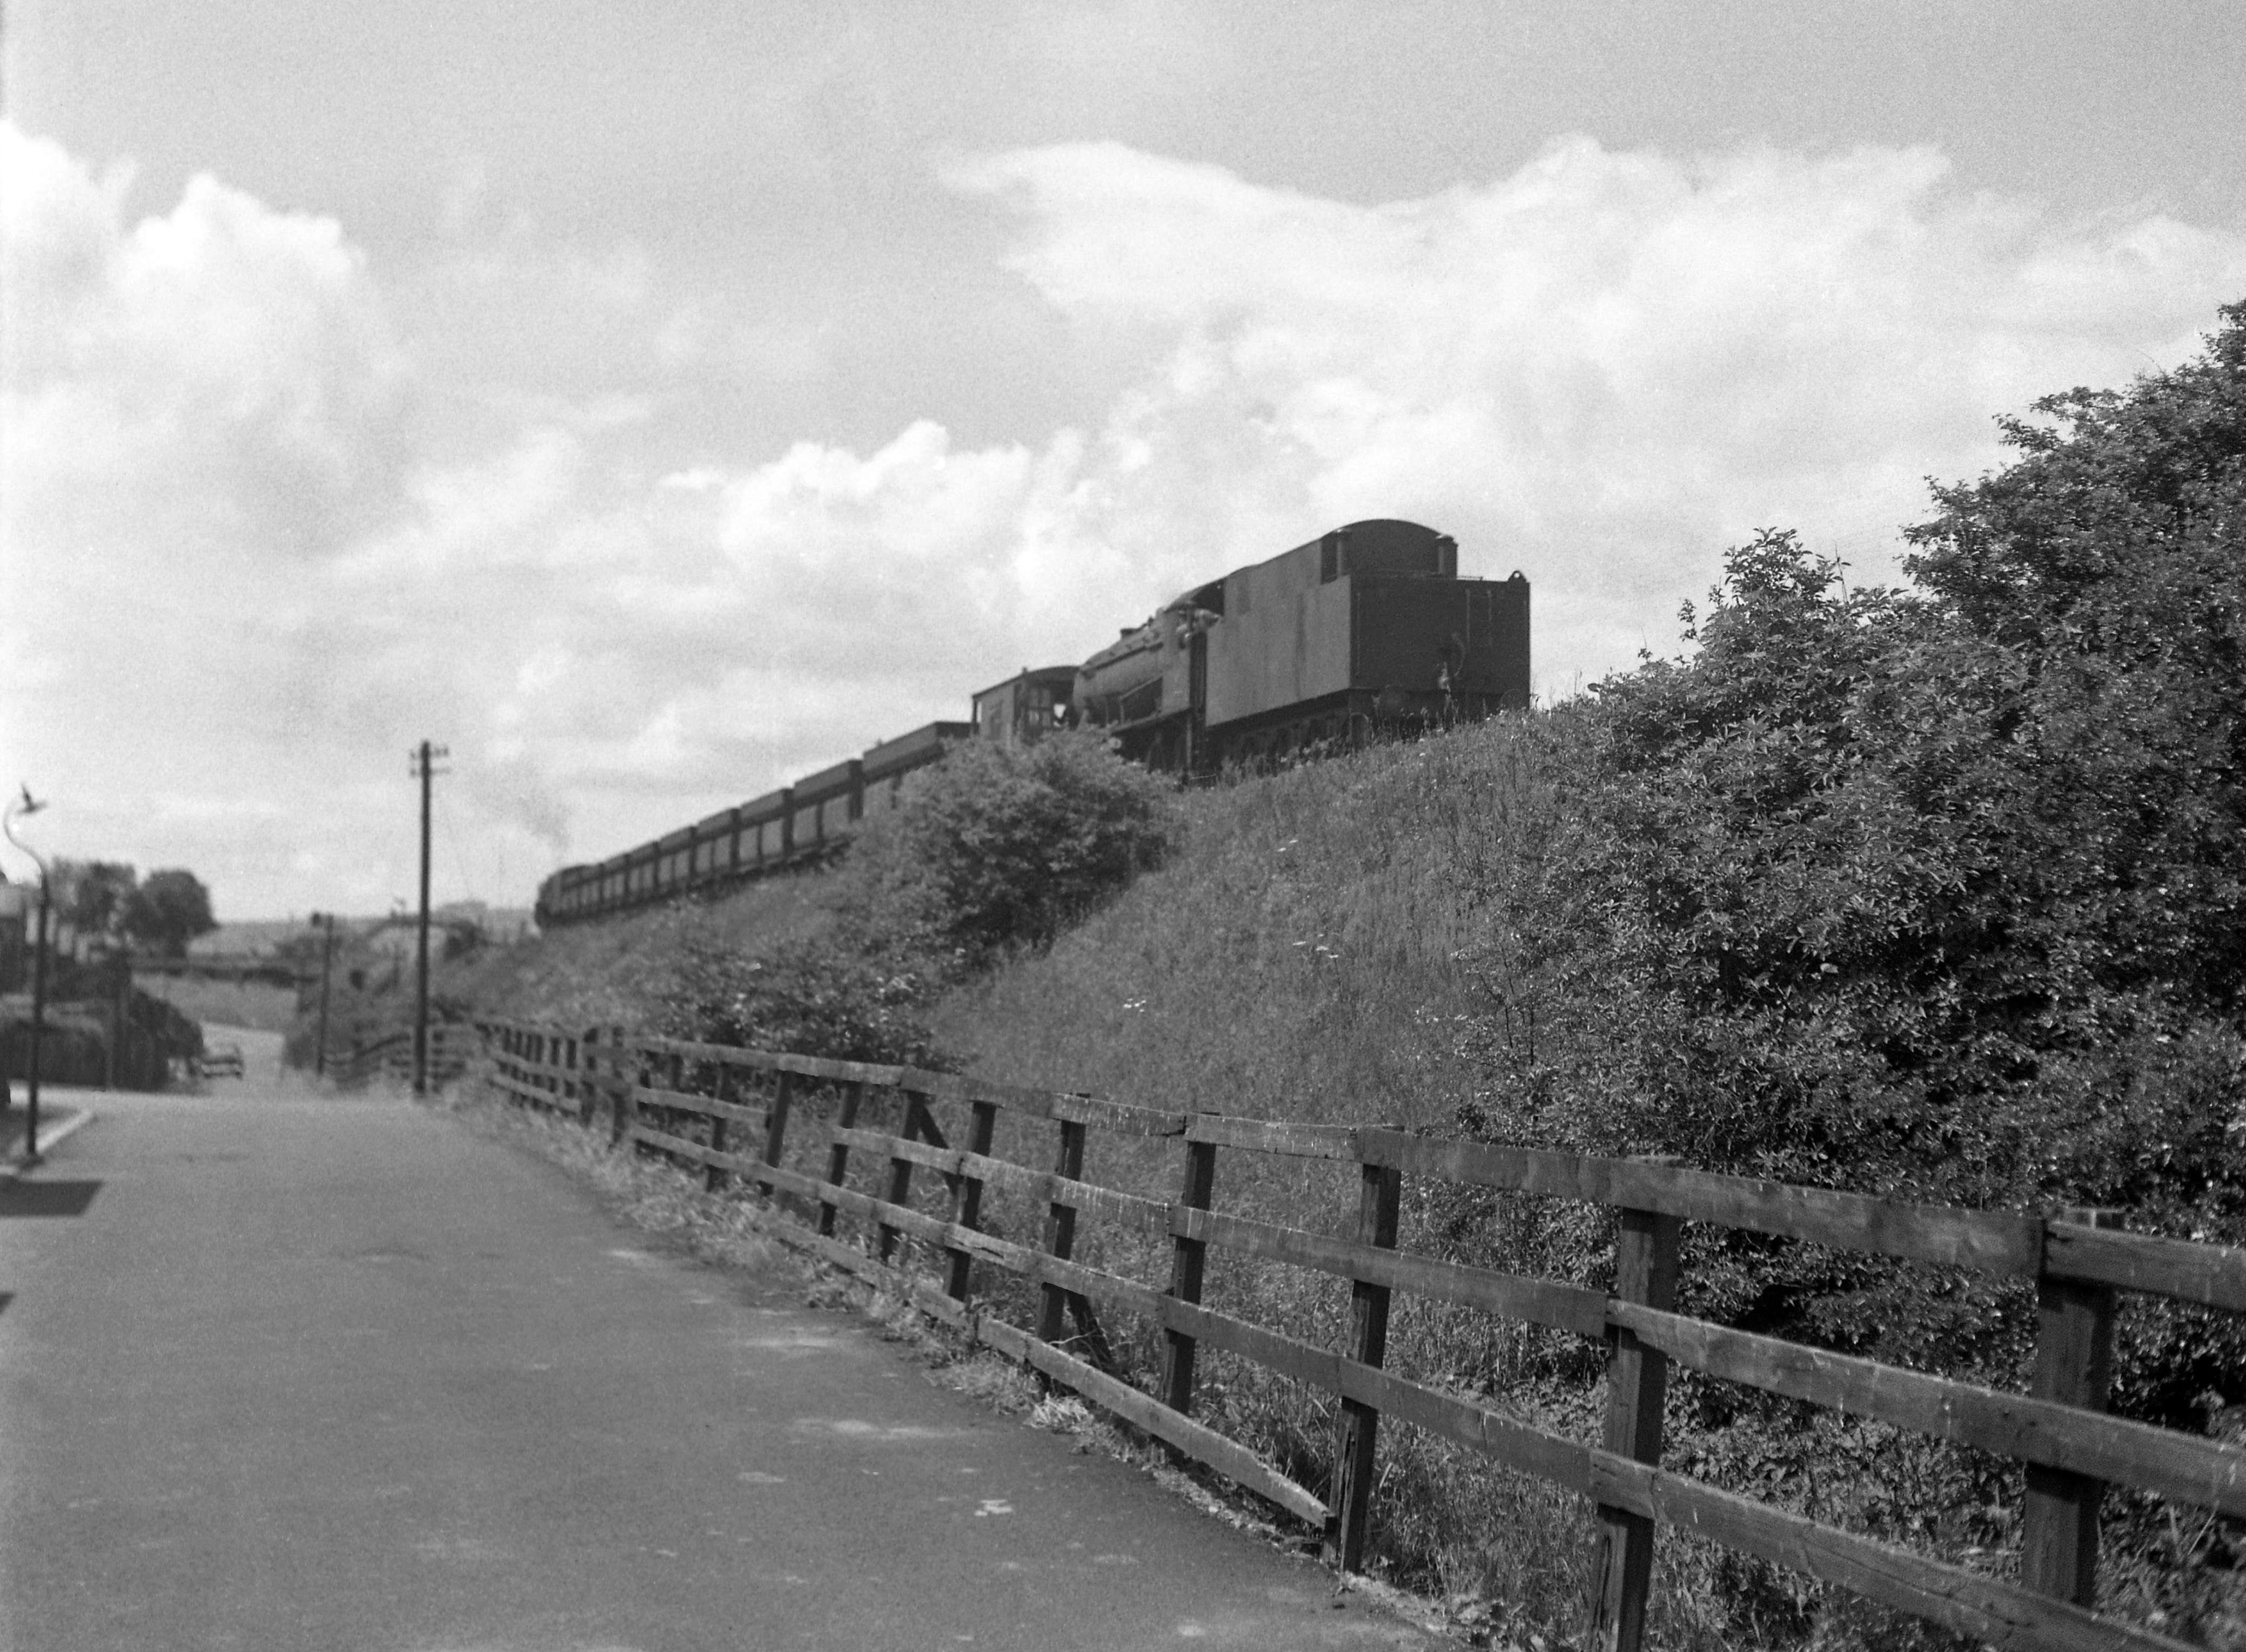 The rear end of the train in the photo above showing the WD locomotive acting as the banker. Photo copyright Rail-Online